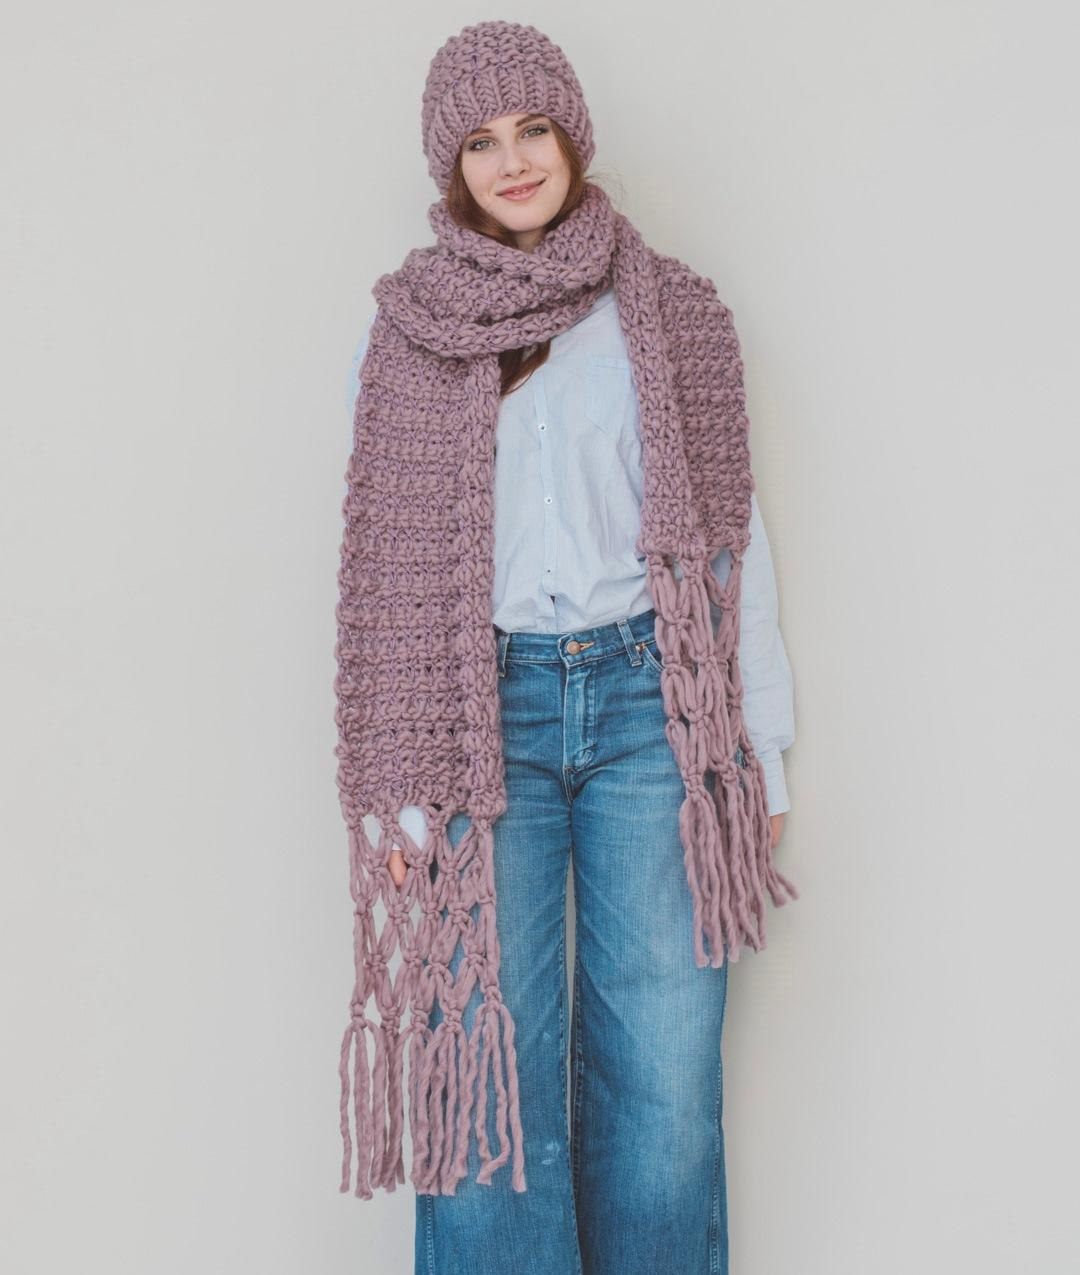 Scarves and Snoods - Wool - ROMANTIC SCARF - 1